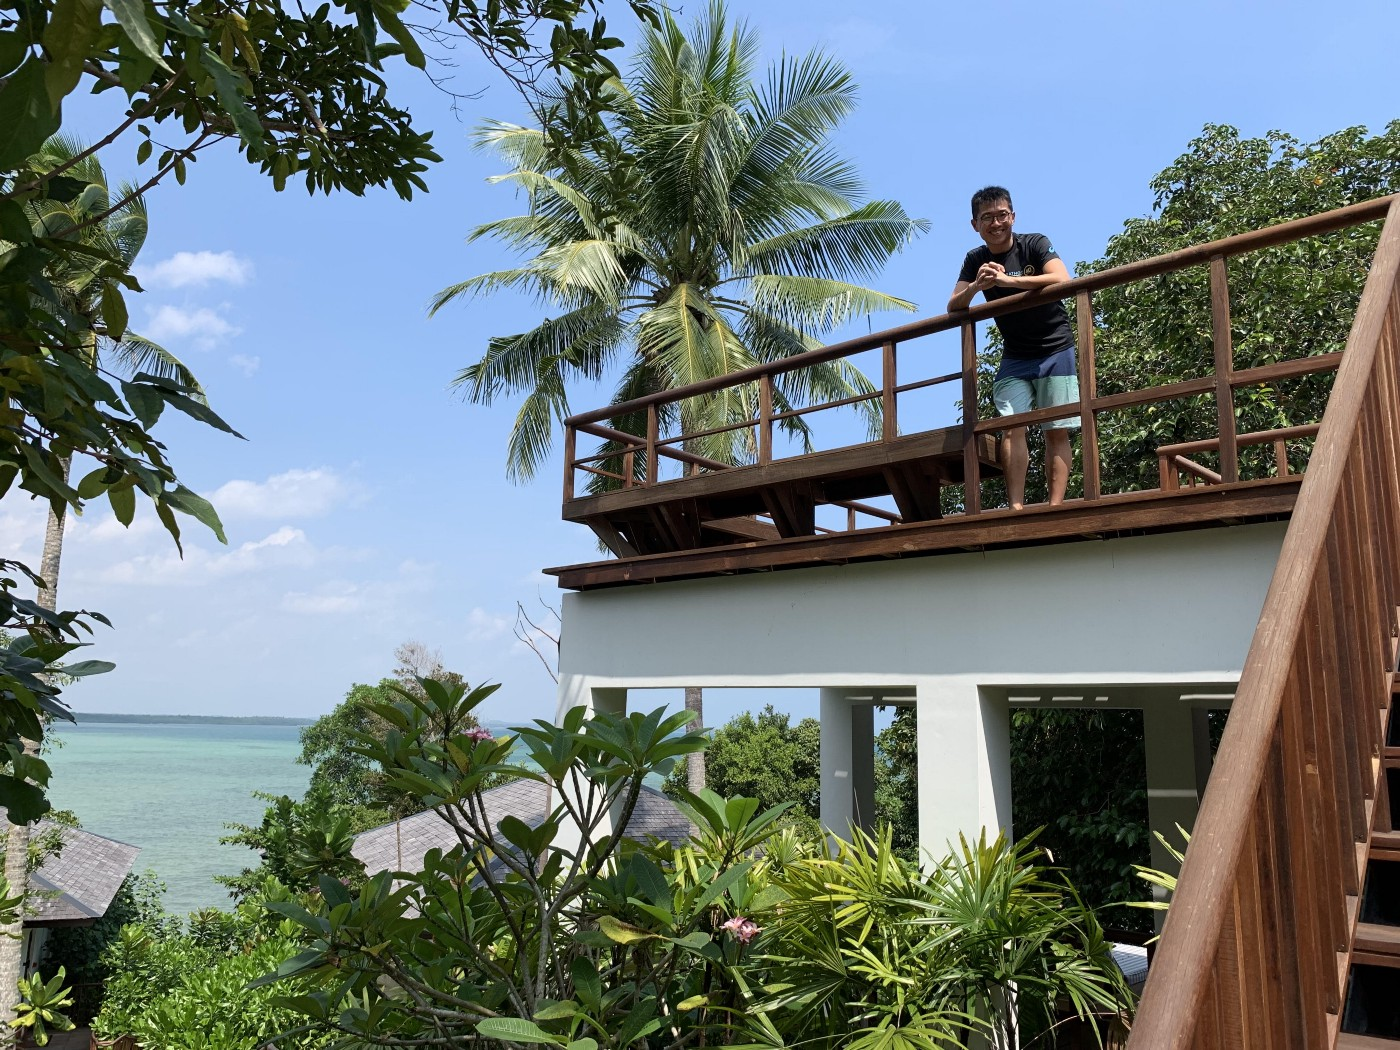 Author standing at the balcony of a beach resort.